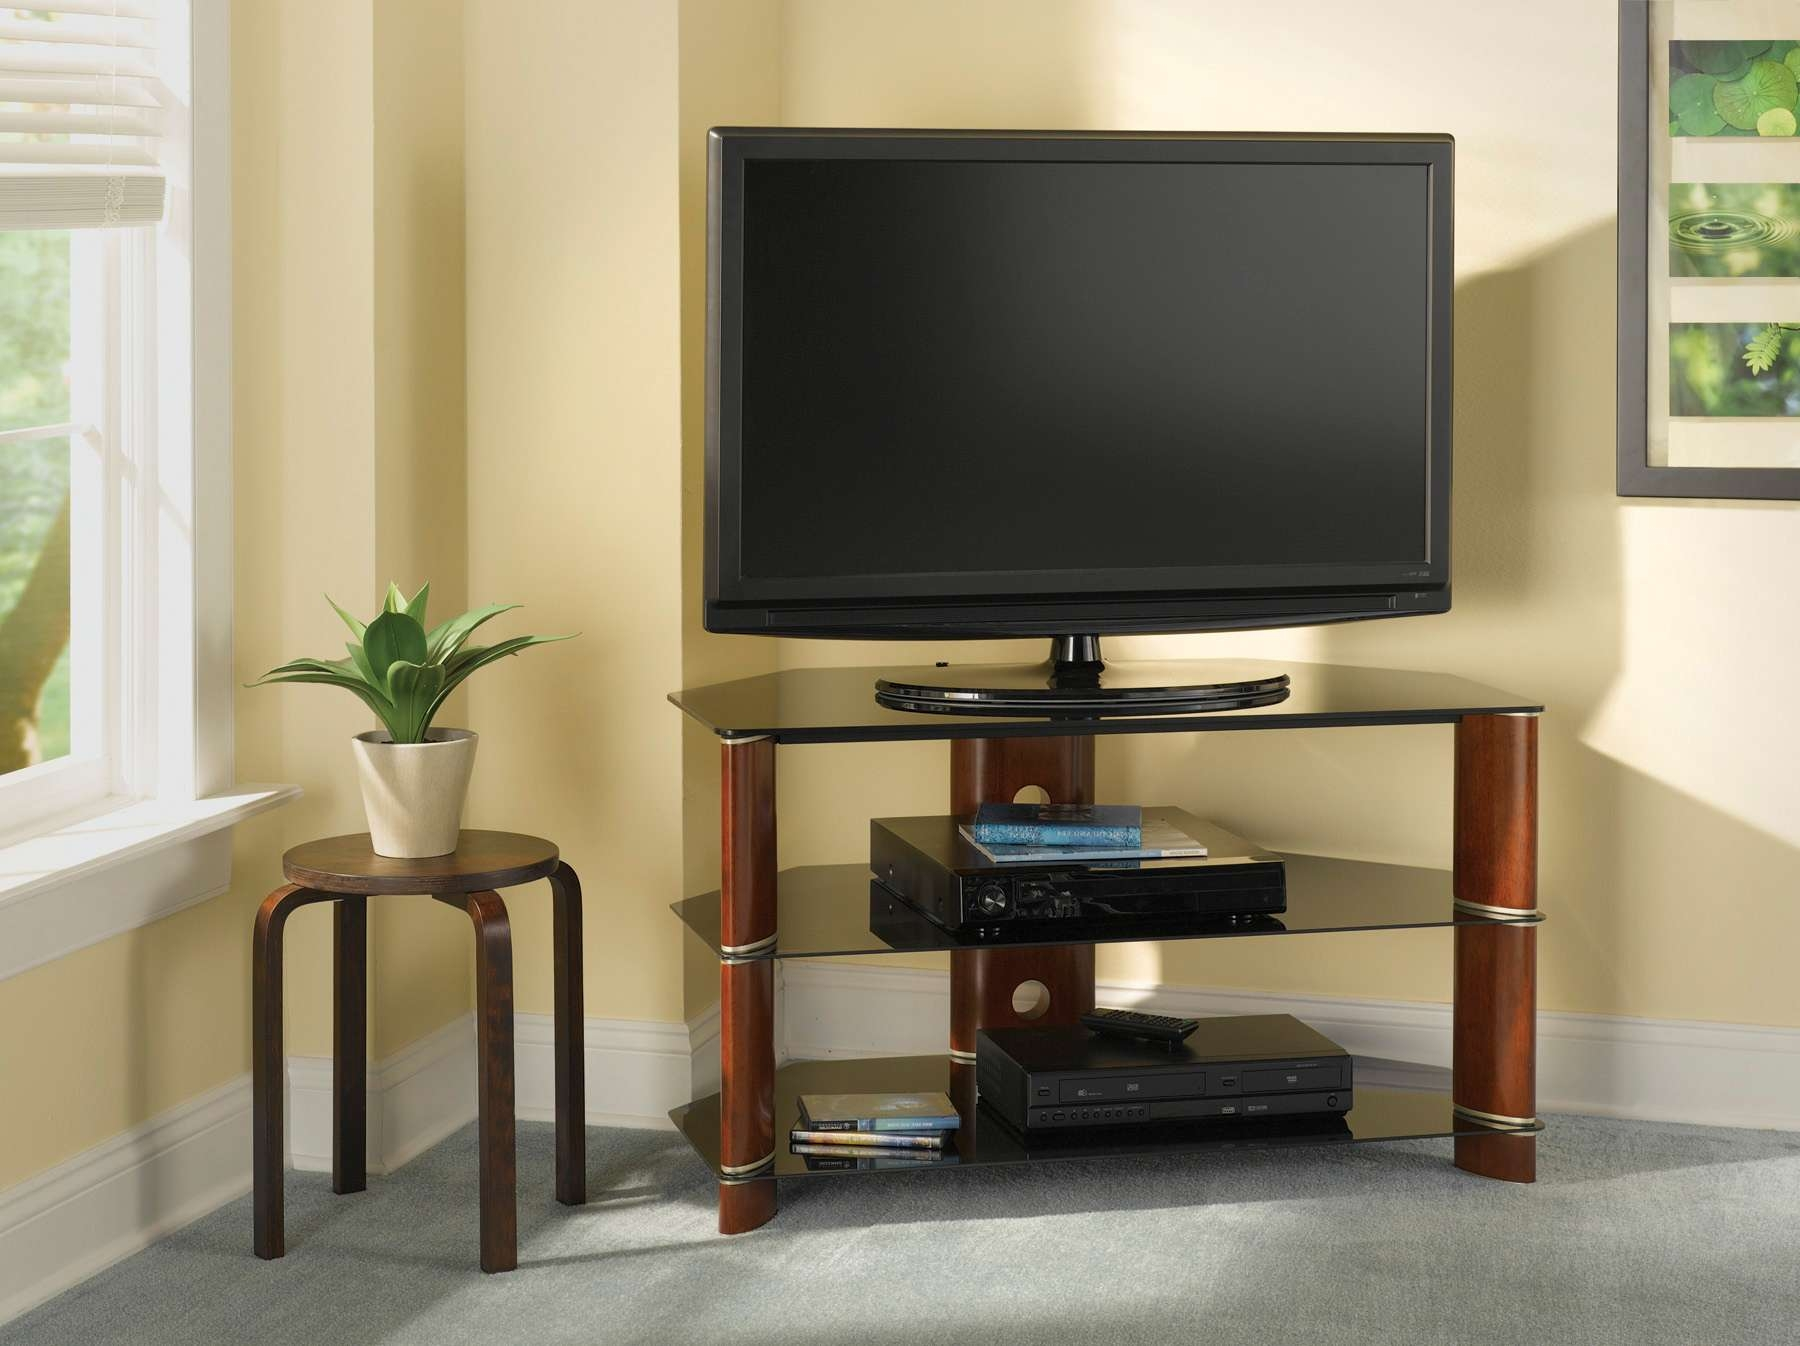 Outstanding Modern Corner Tv Stand And Contemporary Trends Images With Regard To Contemporary Corner Tv Stands (View 9 of 15)